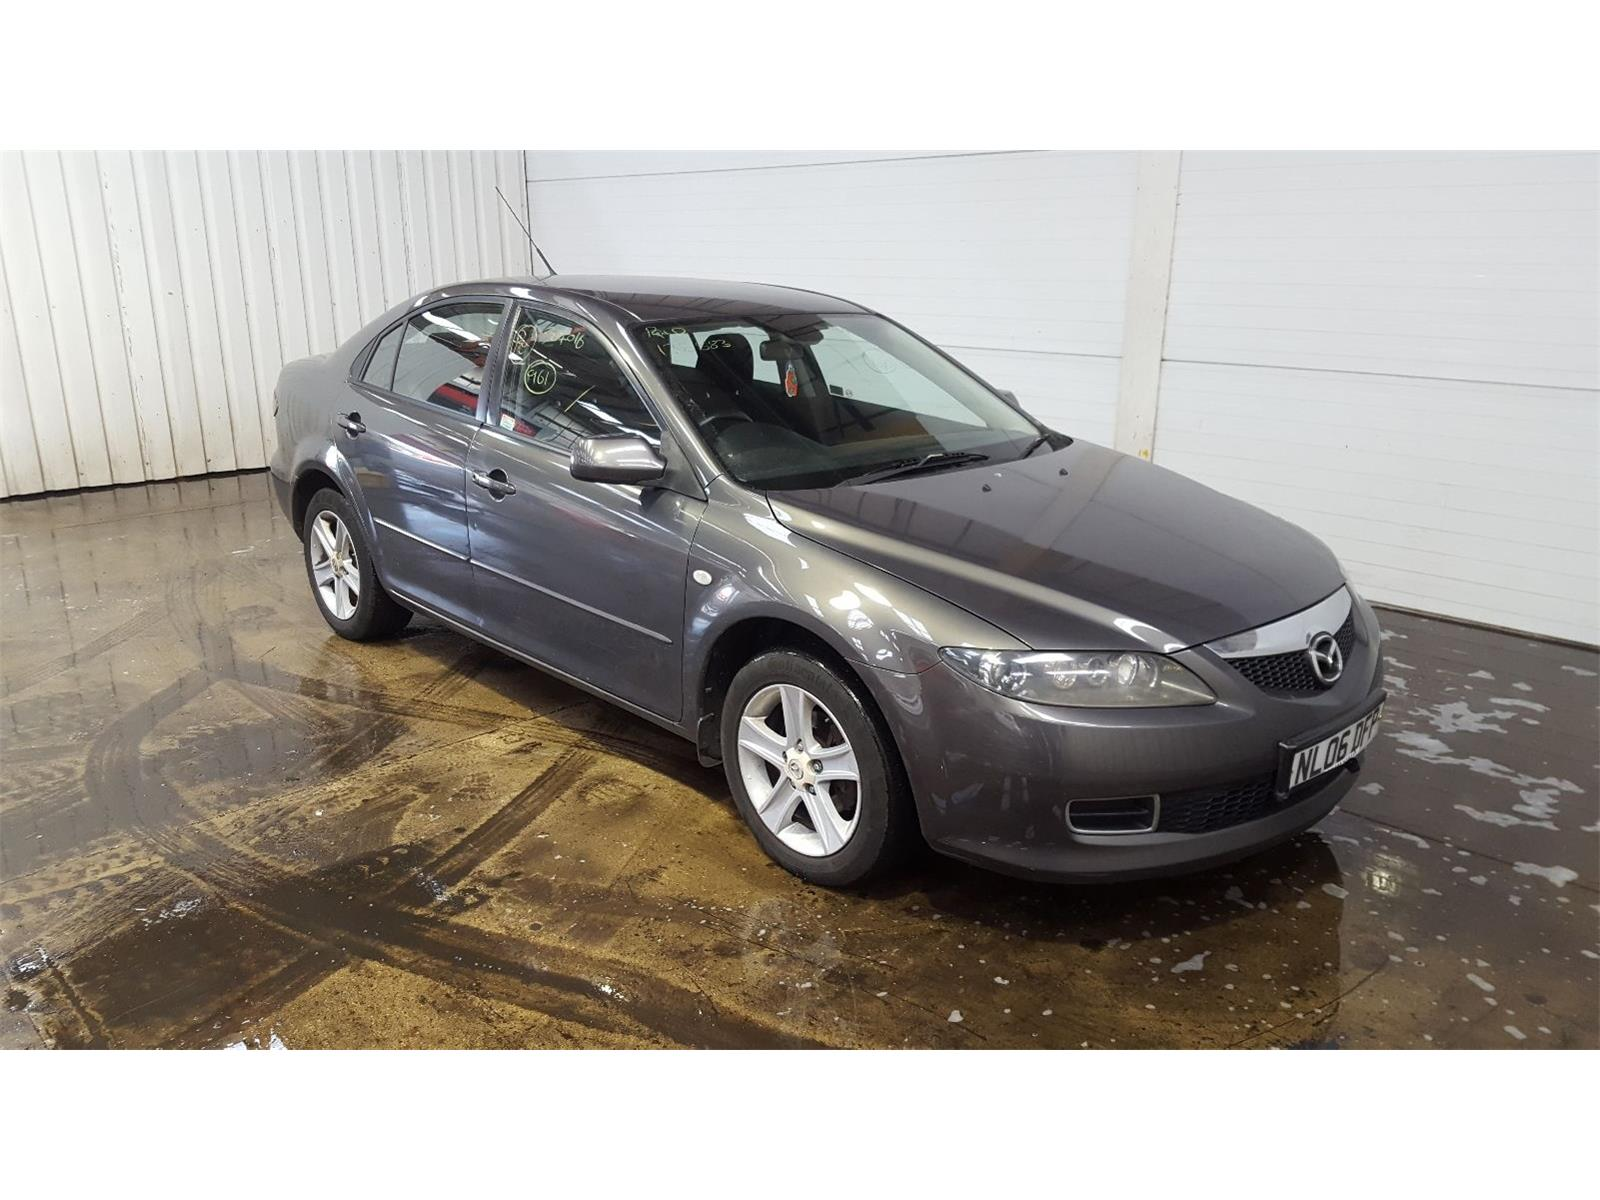 2006 MAZDA 6 TS Td 1998cc Turbo Diesel Manual 6 Speed 5 Door Hatchback [Not  Recorded]